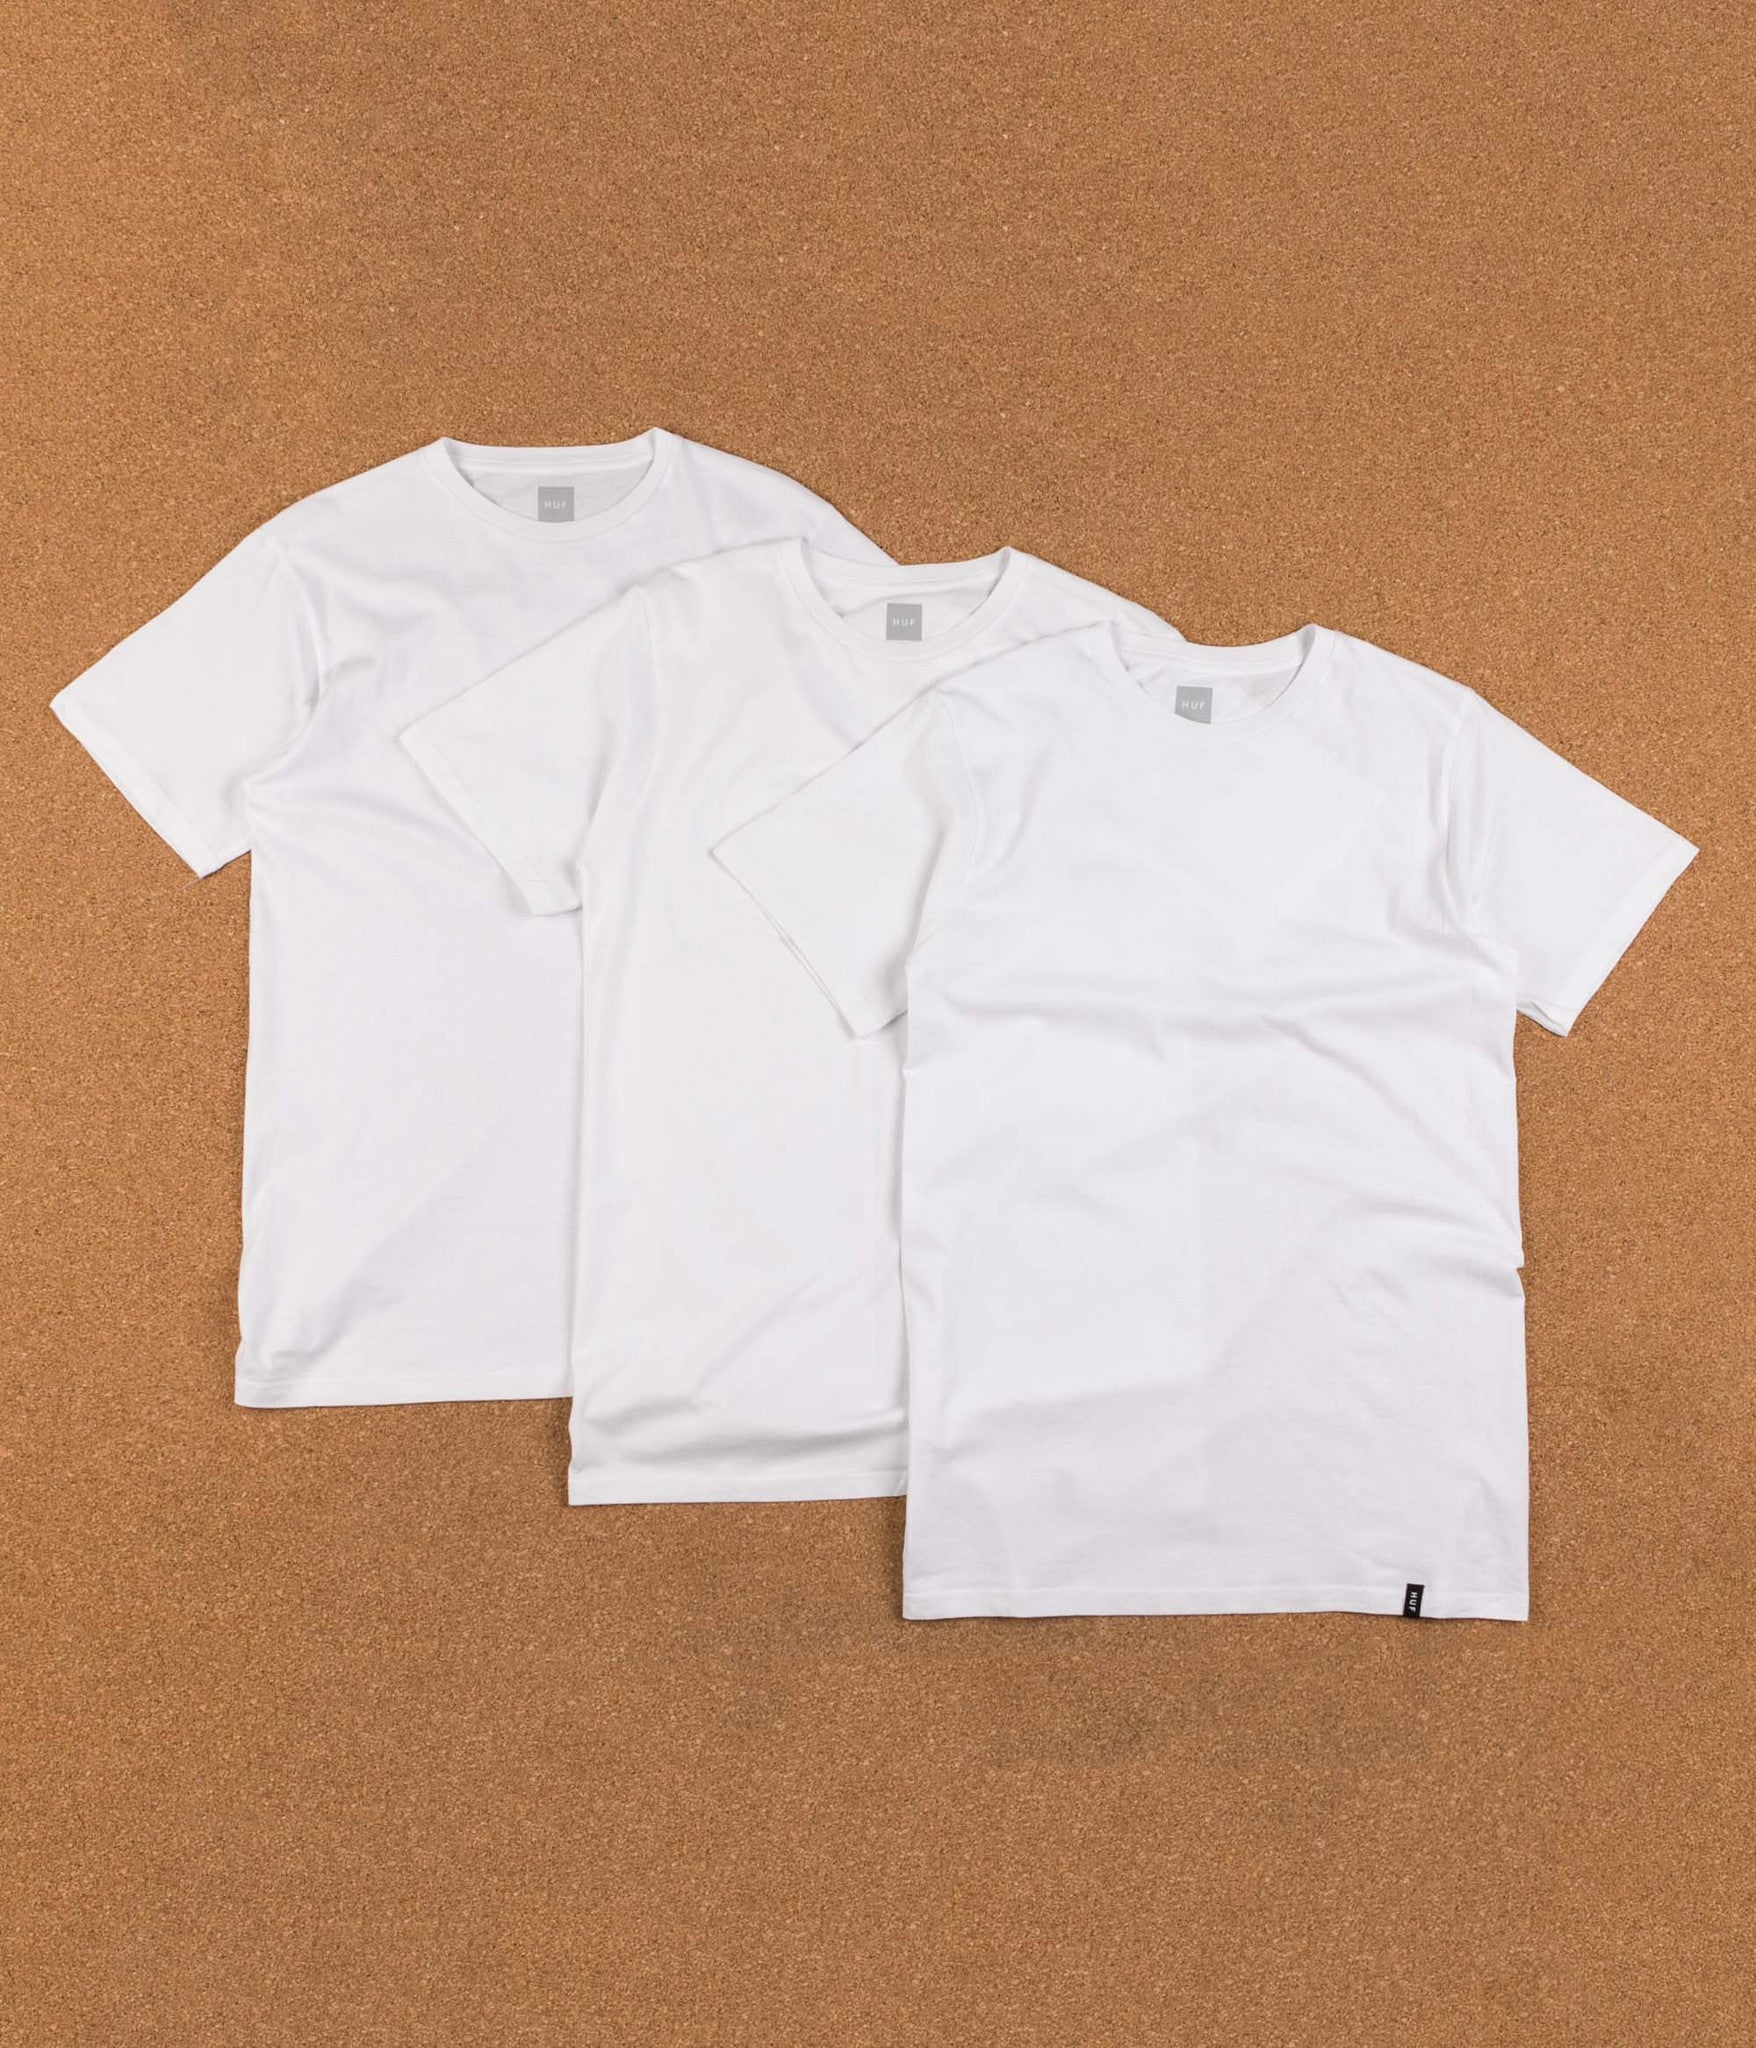 HUF T-Shirt Three Pack - White